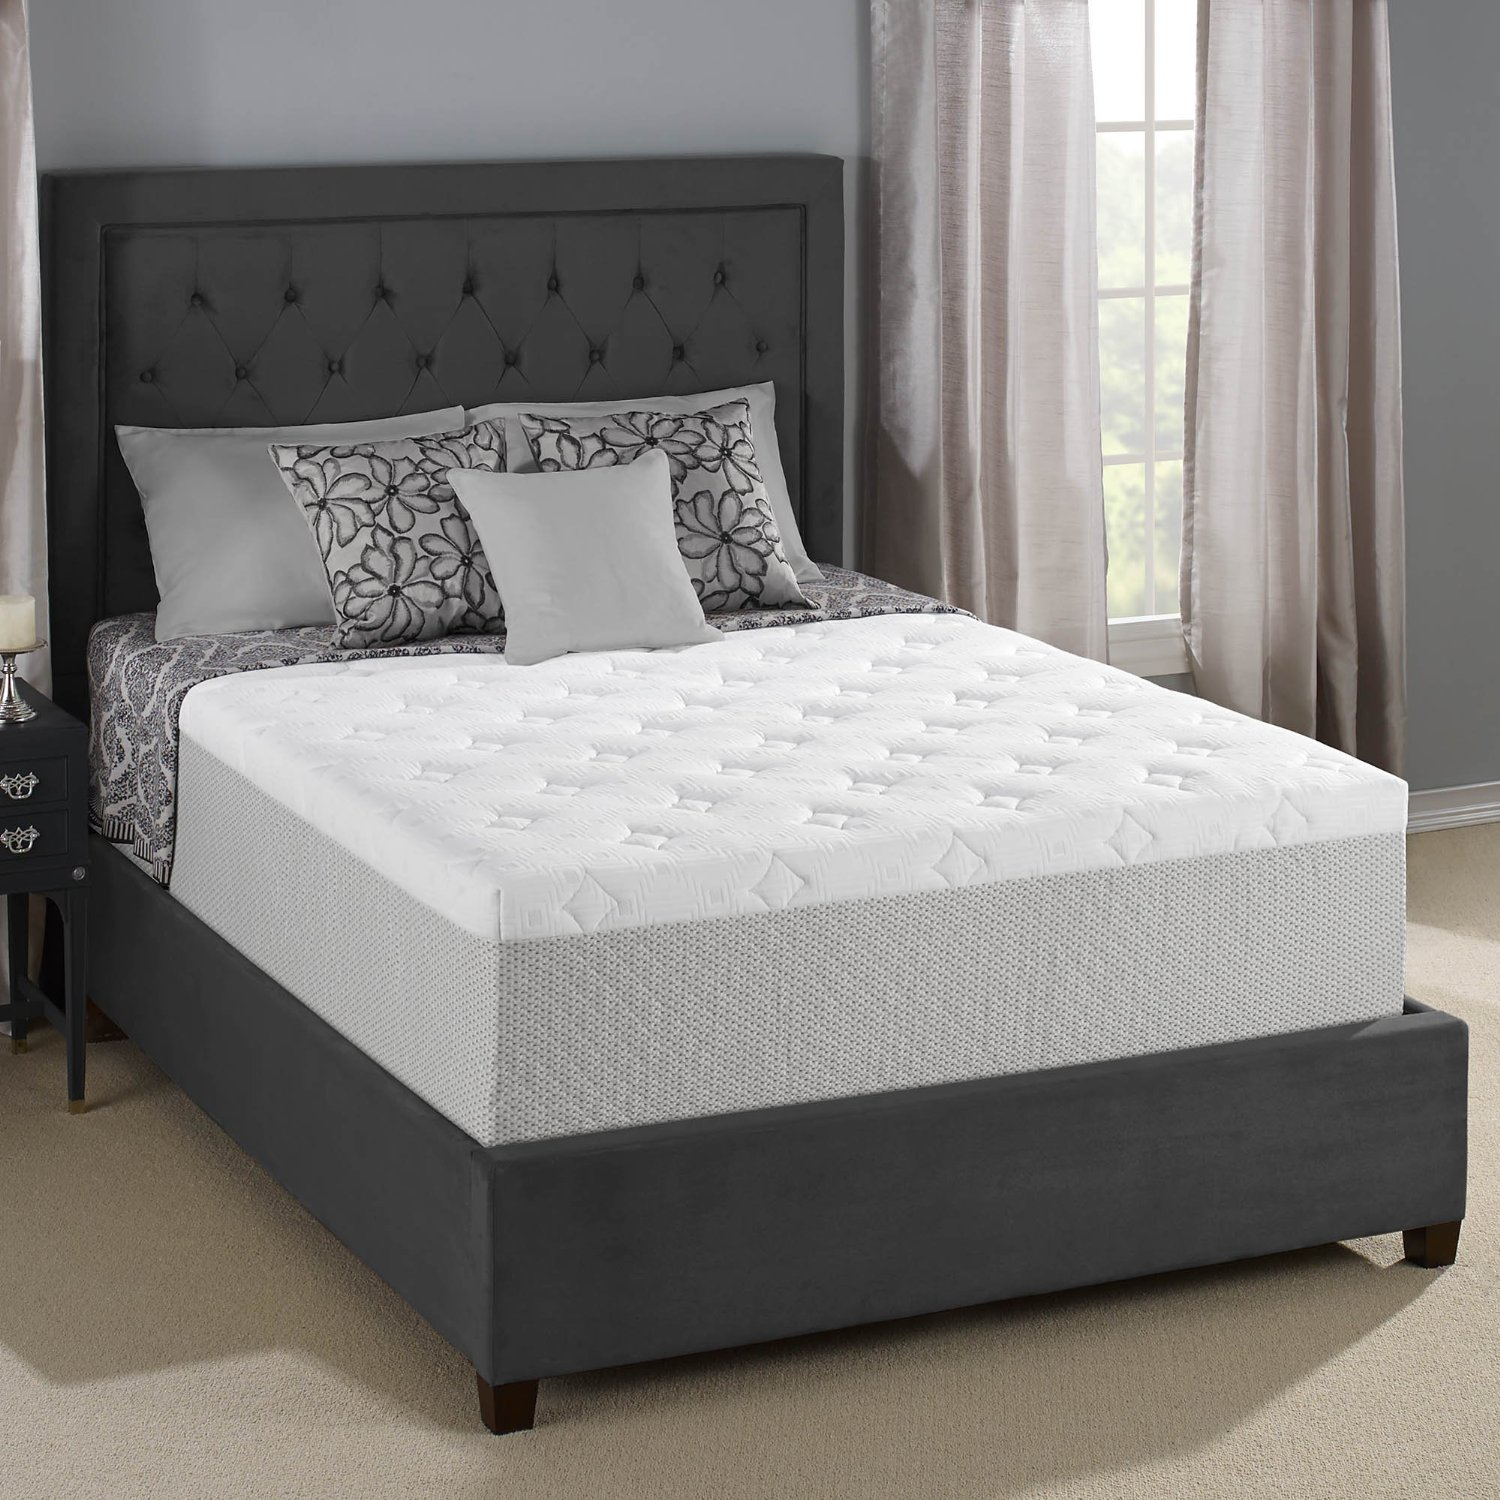 Wonderful King Size Memory Foam Mattress